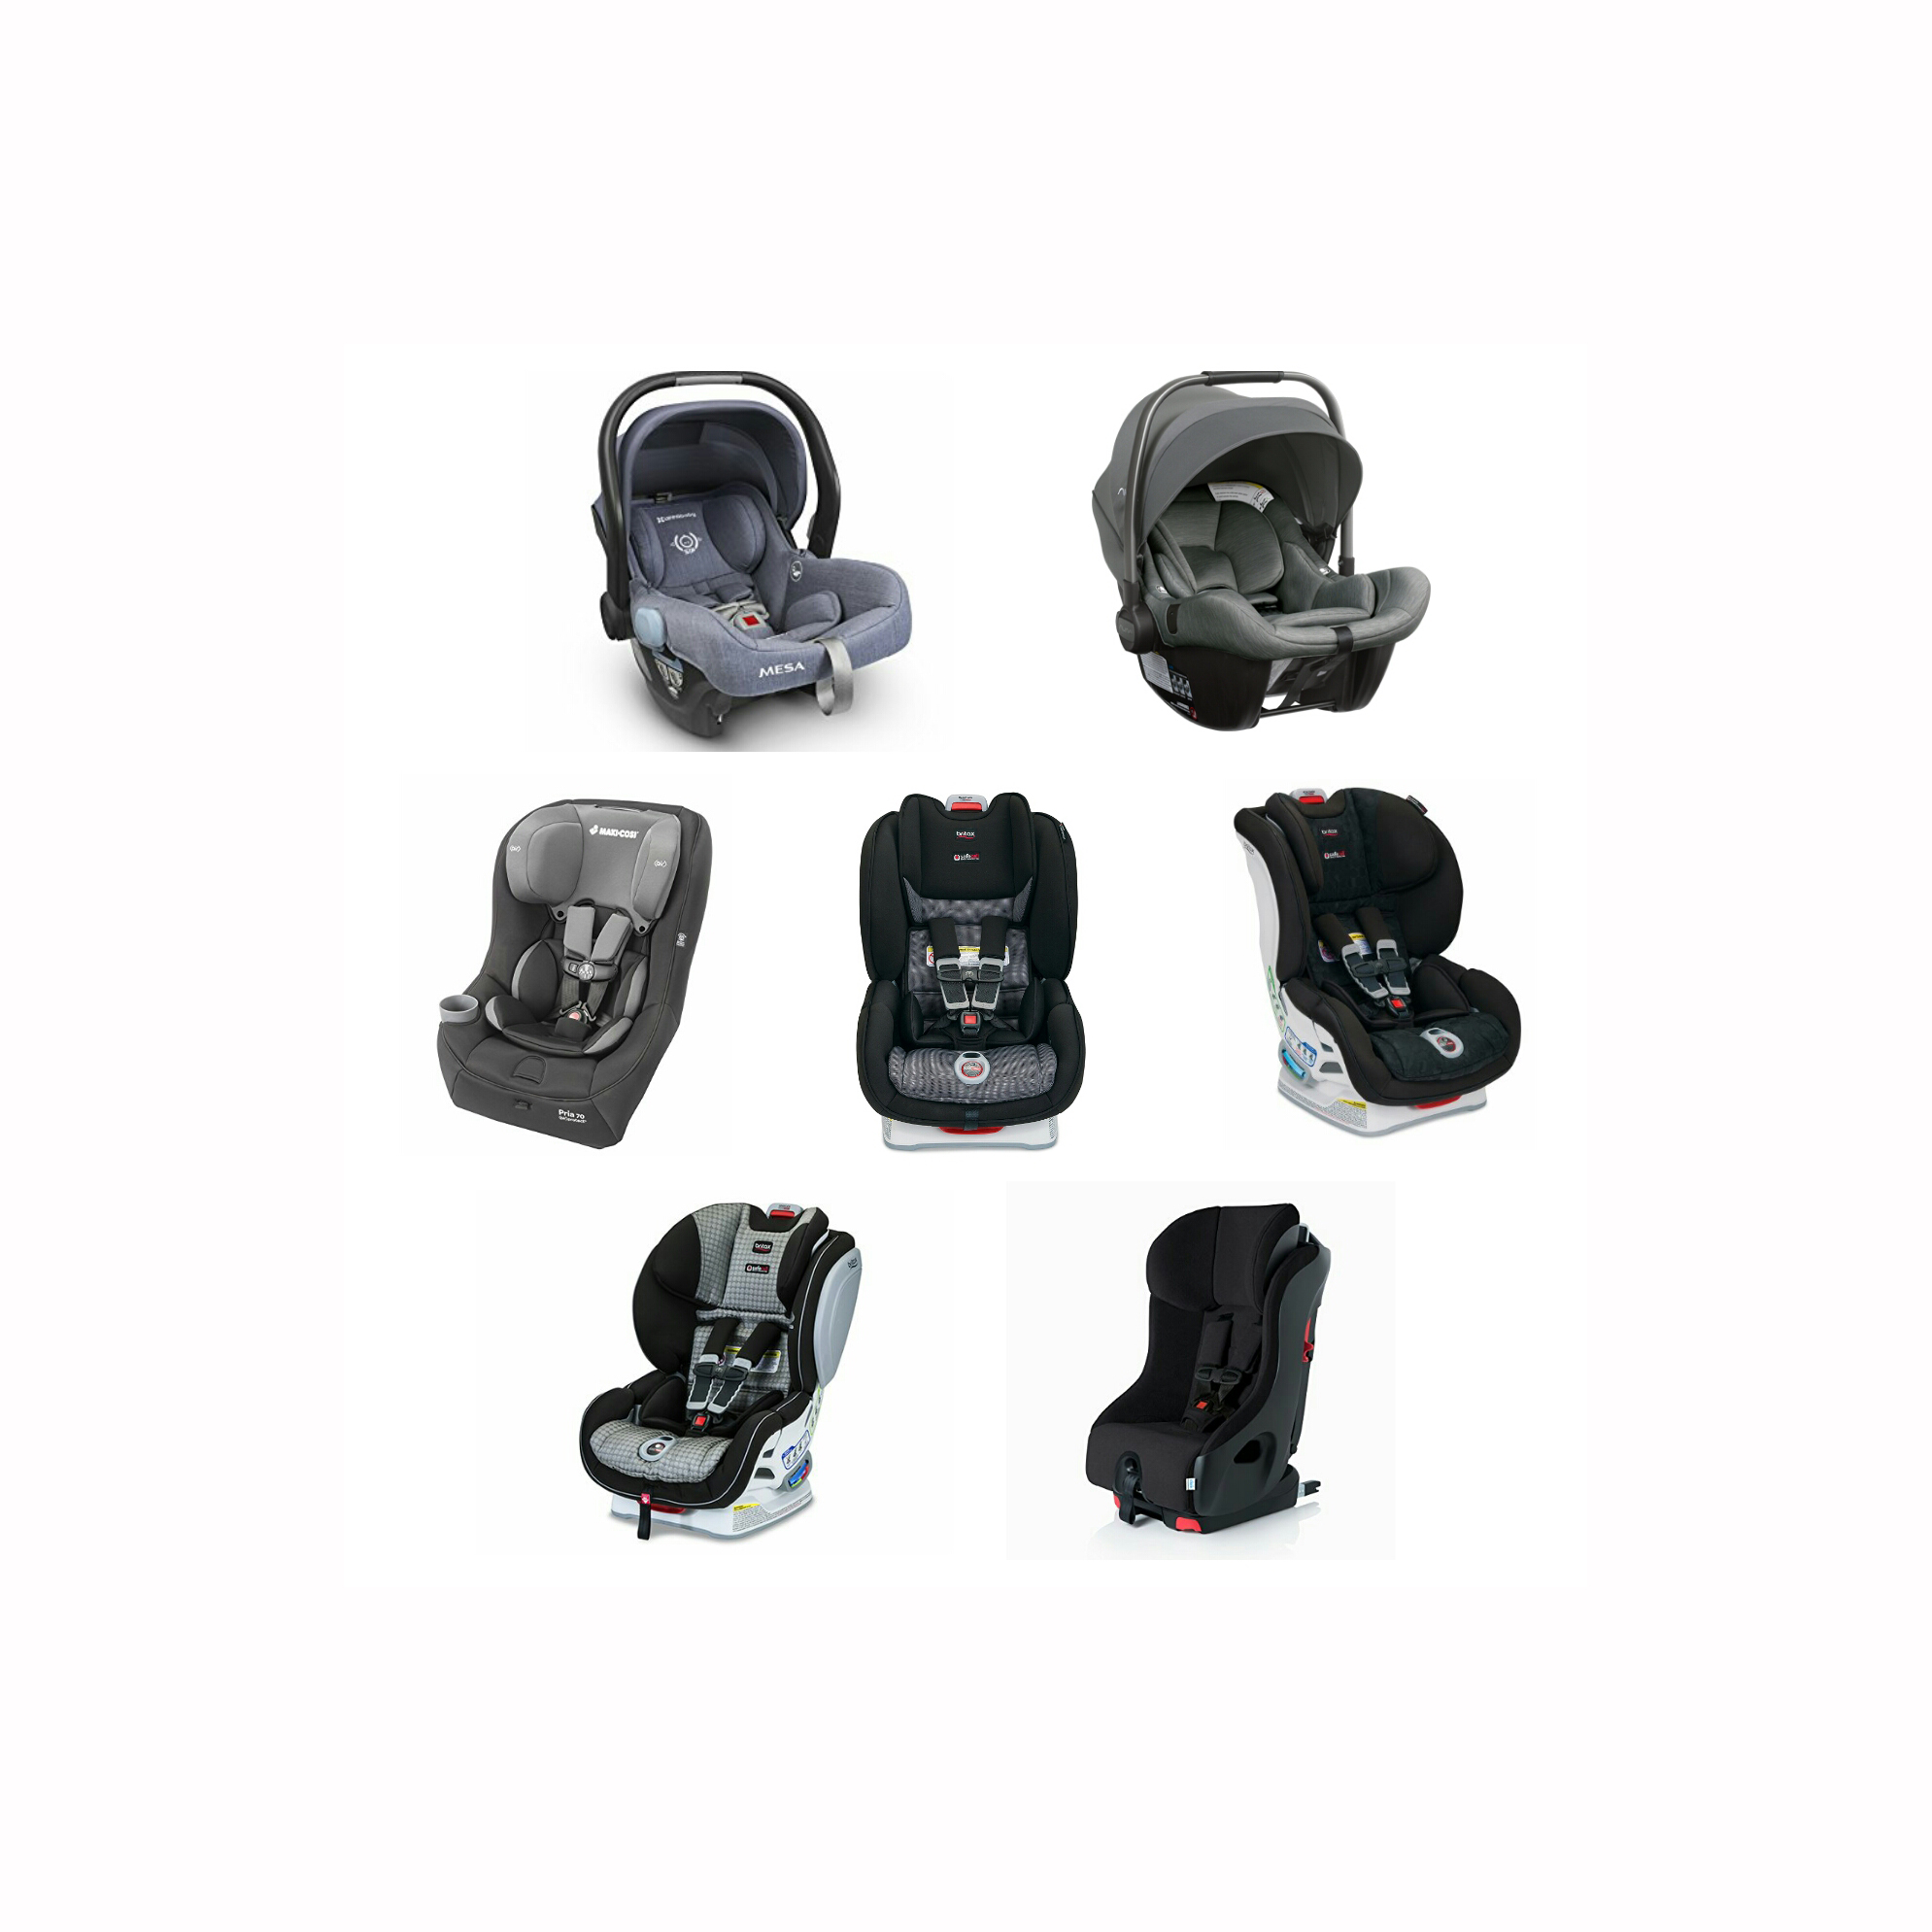 Non Toxic Car Seat Without Toxic Flame ant Chemicals